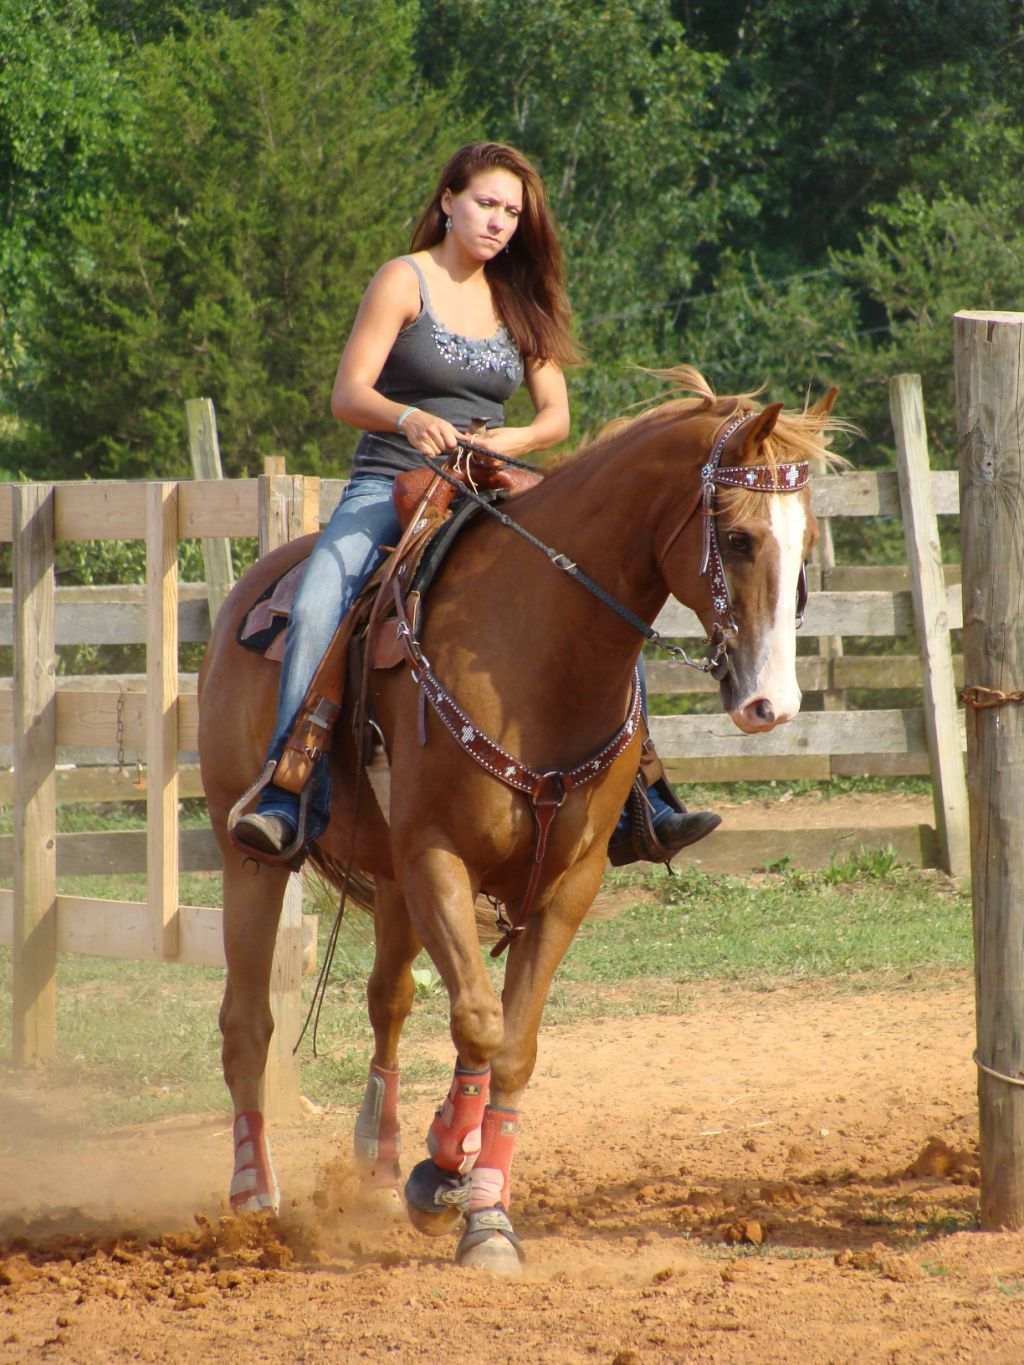 Monster Rally Car Wallpaper Taylor Earnhardt And Her Horse Packin Sixes Cowboy